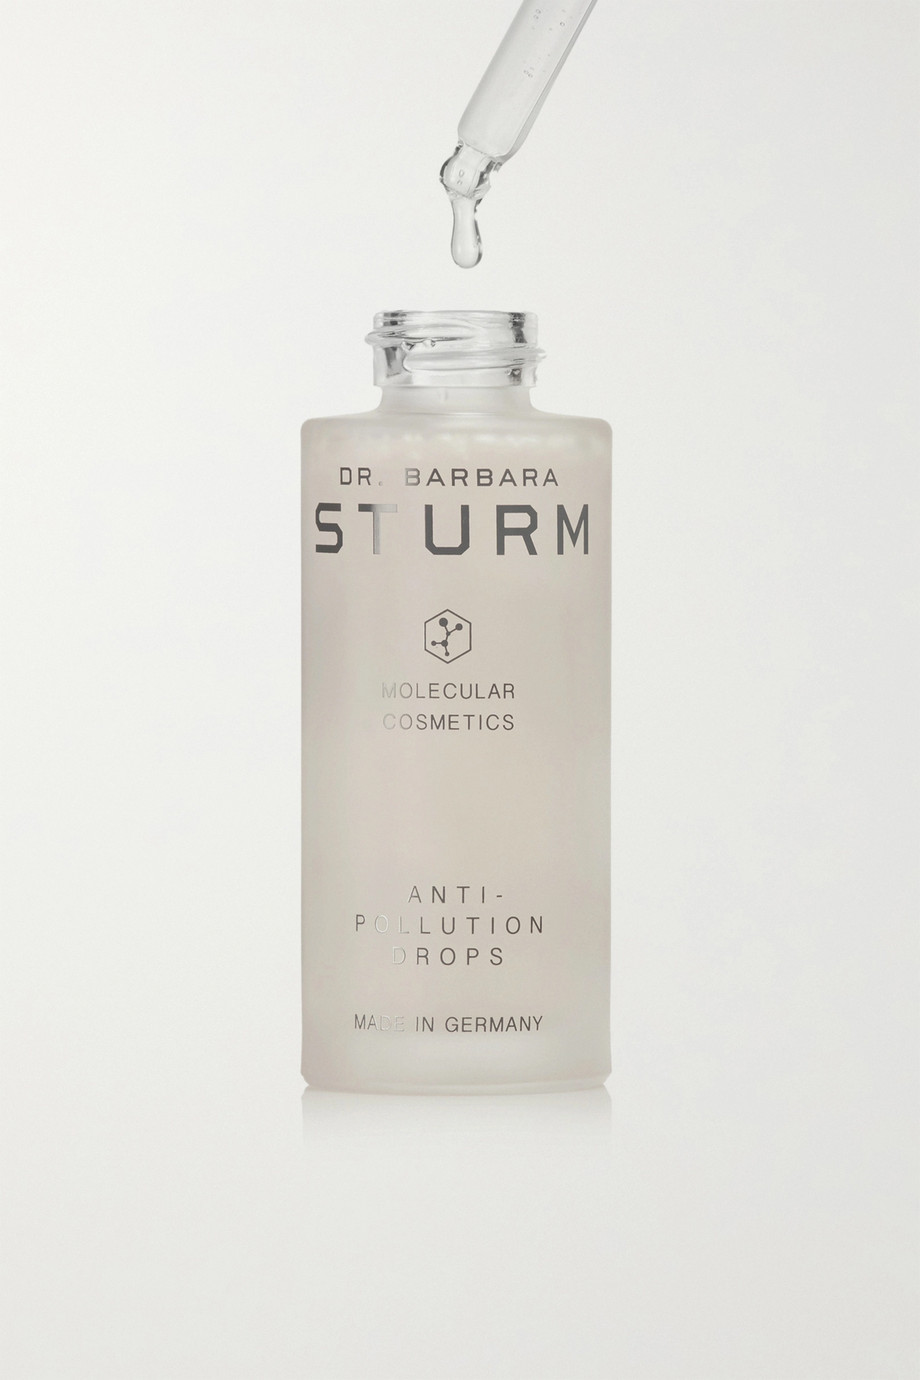 Dr. Barbara Sturm Anti-Pollution Drops – 30 ml – Serum